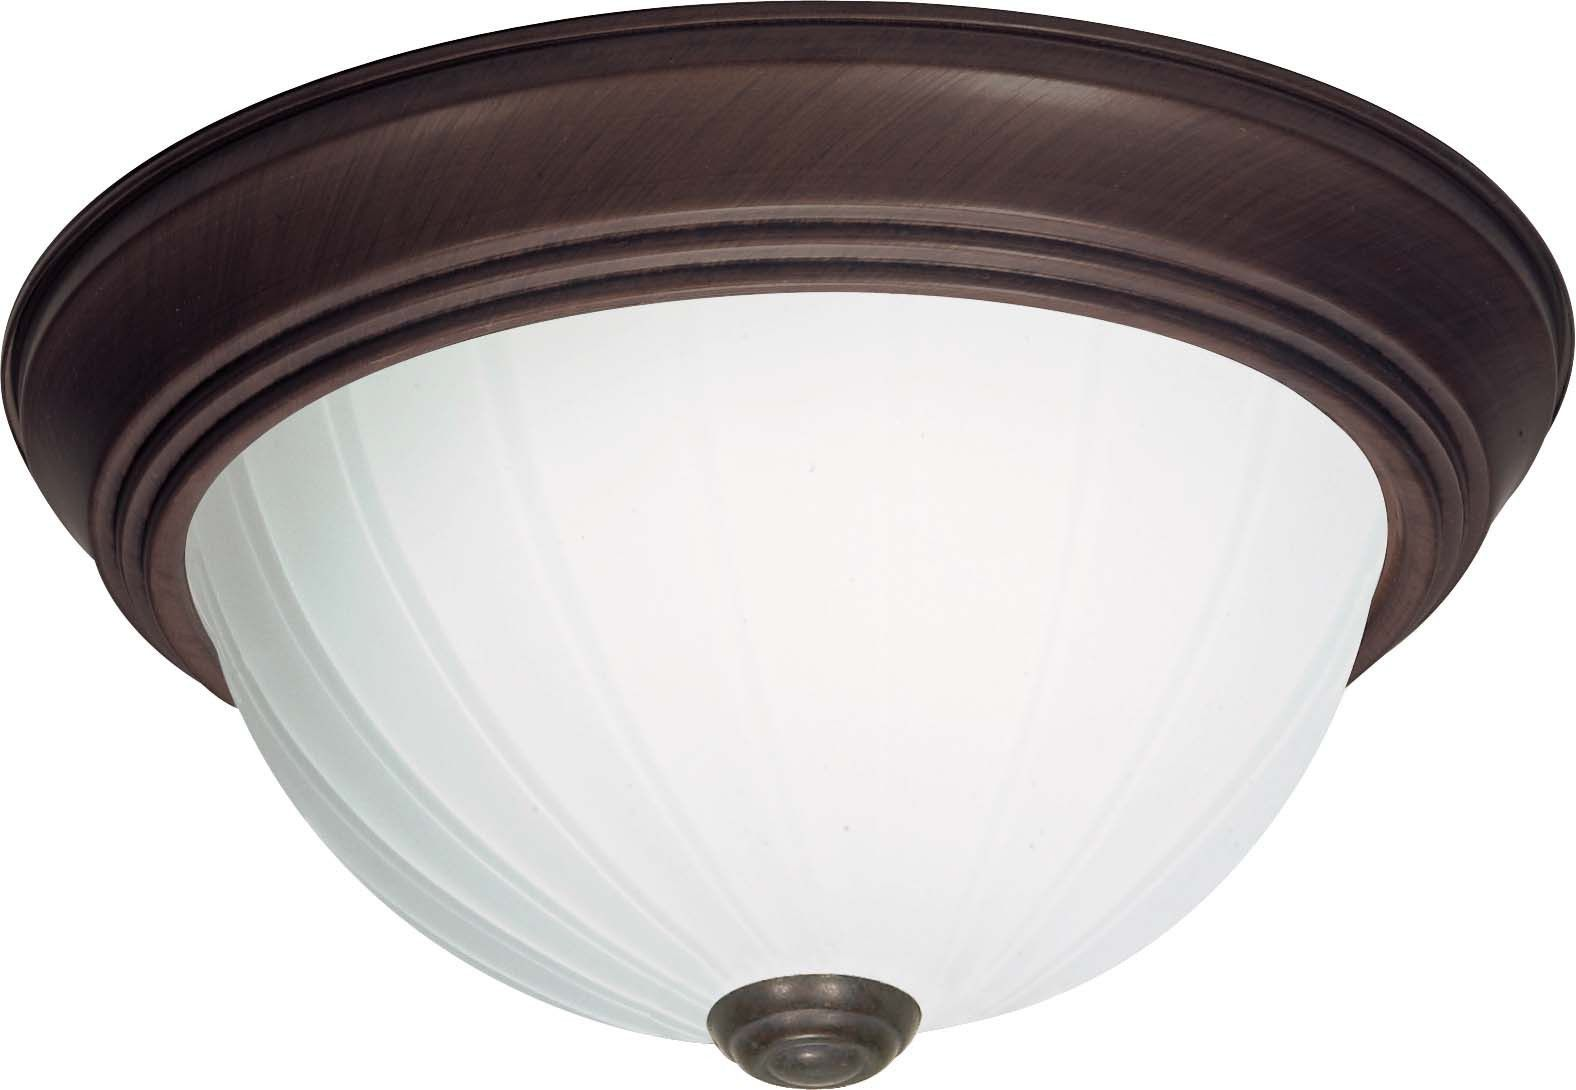 Nuvo 3 Light Cfl 15 In Flush Mount Frosted Melon Glass 13w Gu24 Lamps Ceiling Lights Semi Flush Ceiling Lights Flush Mount Lighting